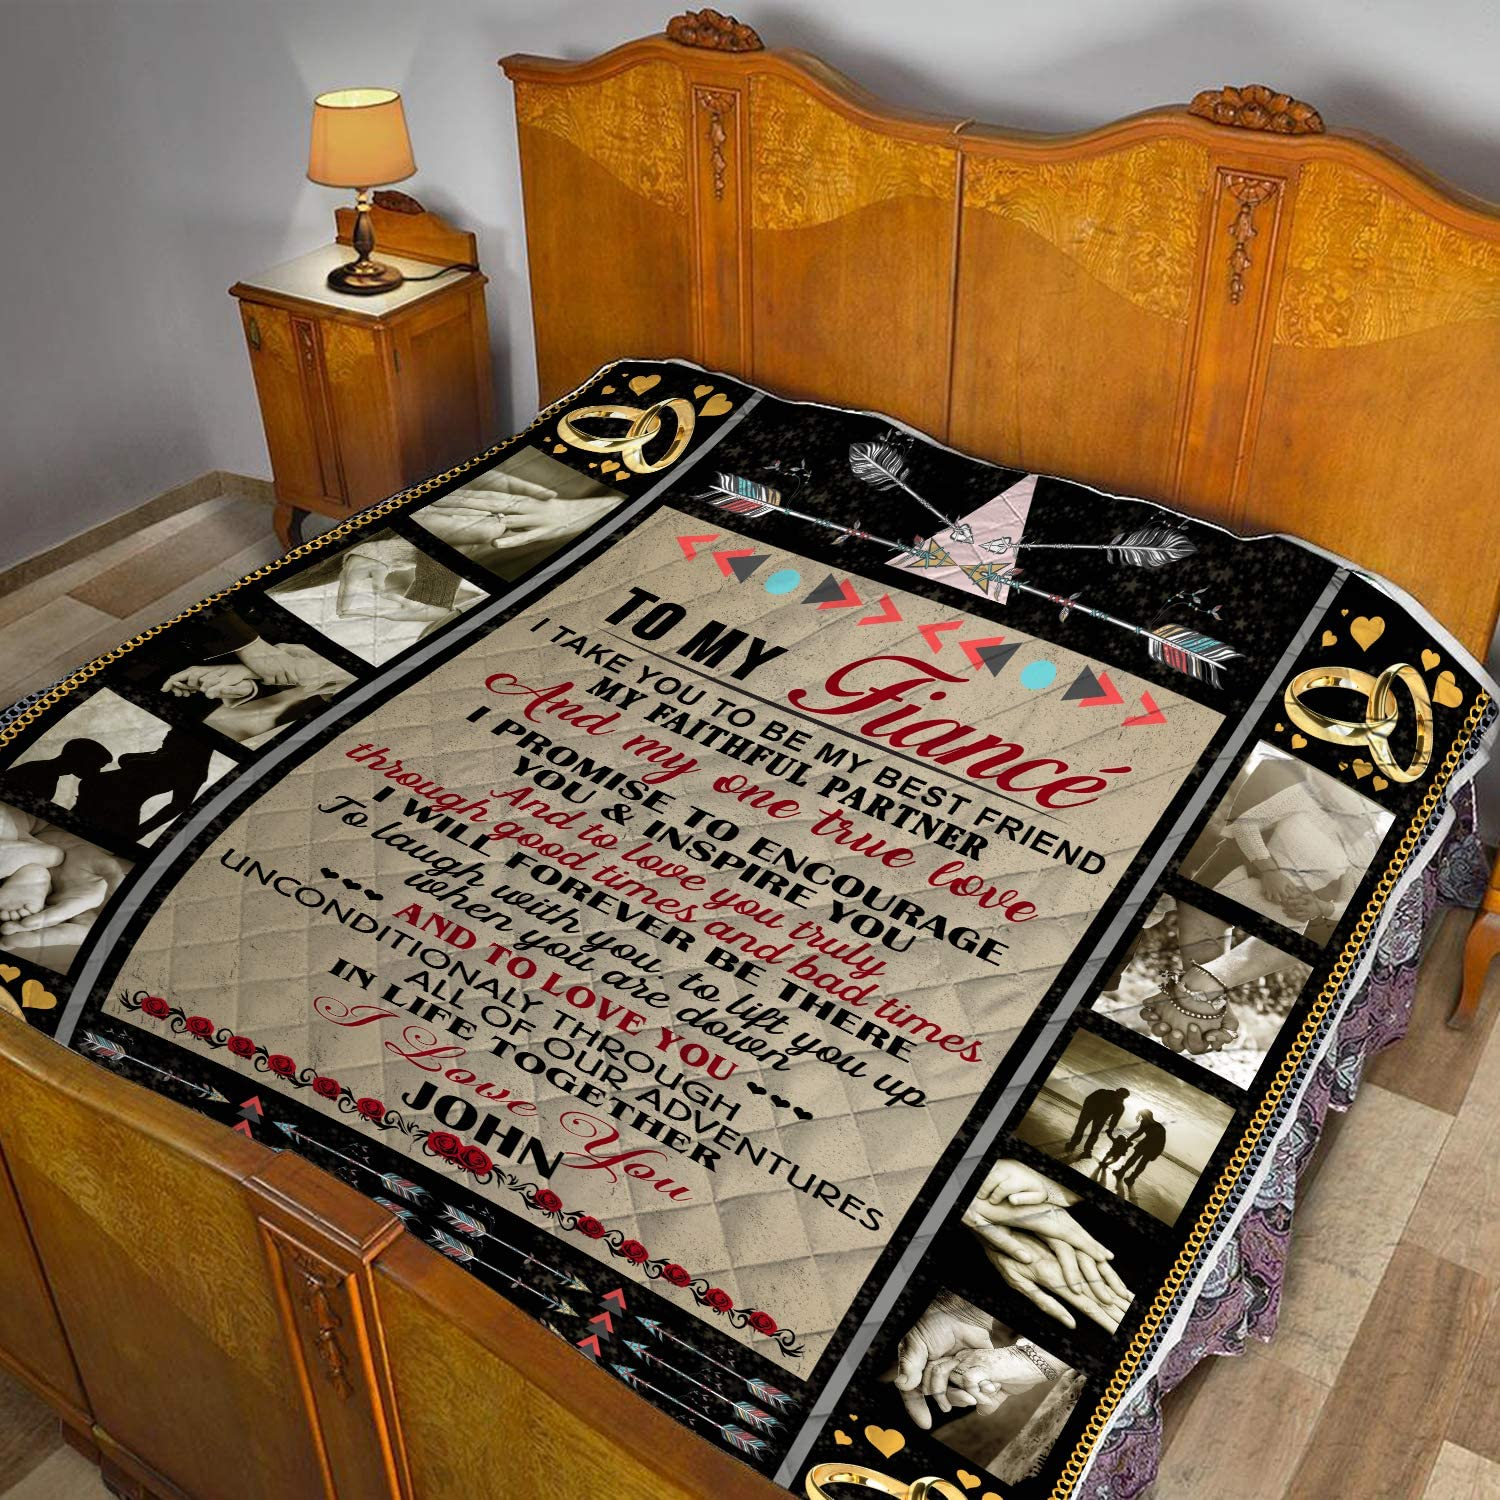 VTH Global Personalized Custom to My Fianc/ée Quilt Blankets Customized Christmas Birthday Wedding Anniversary Engagement Custom Fiancee Gifts from Electrical Journeyman Lineman Husband Fiance